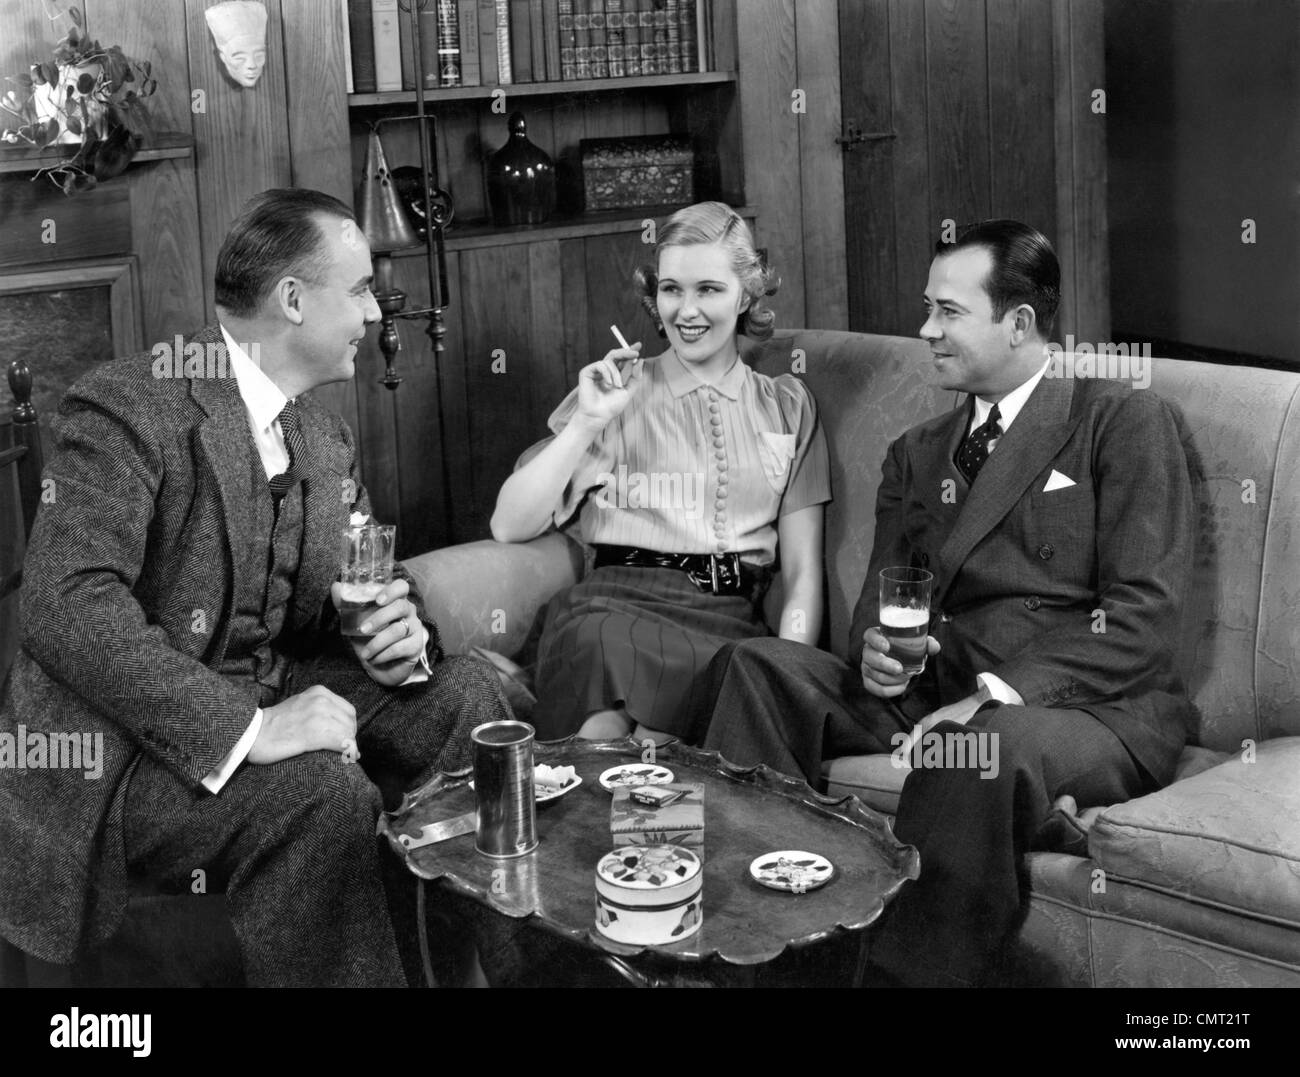 1940s TWO MEN AND ONE WOMAN SOCIAL GROUP SITTING ON COUCH DRINKING BEER SMOKING CIGARETTES TALKING - Stock Image